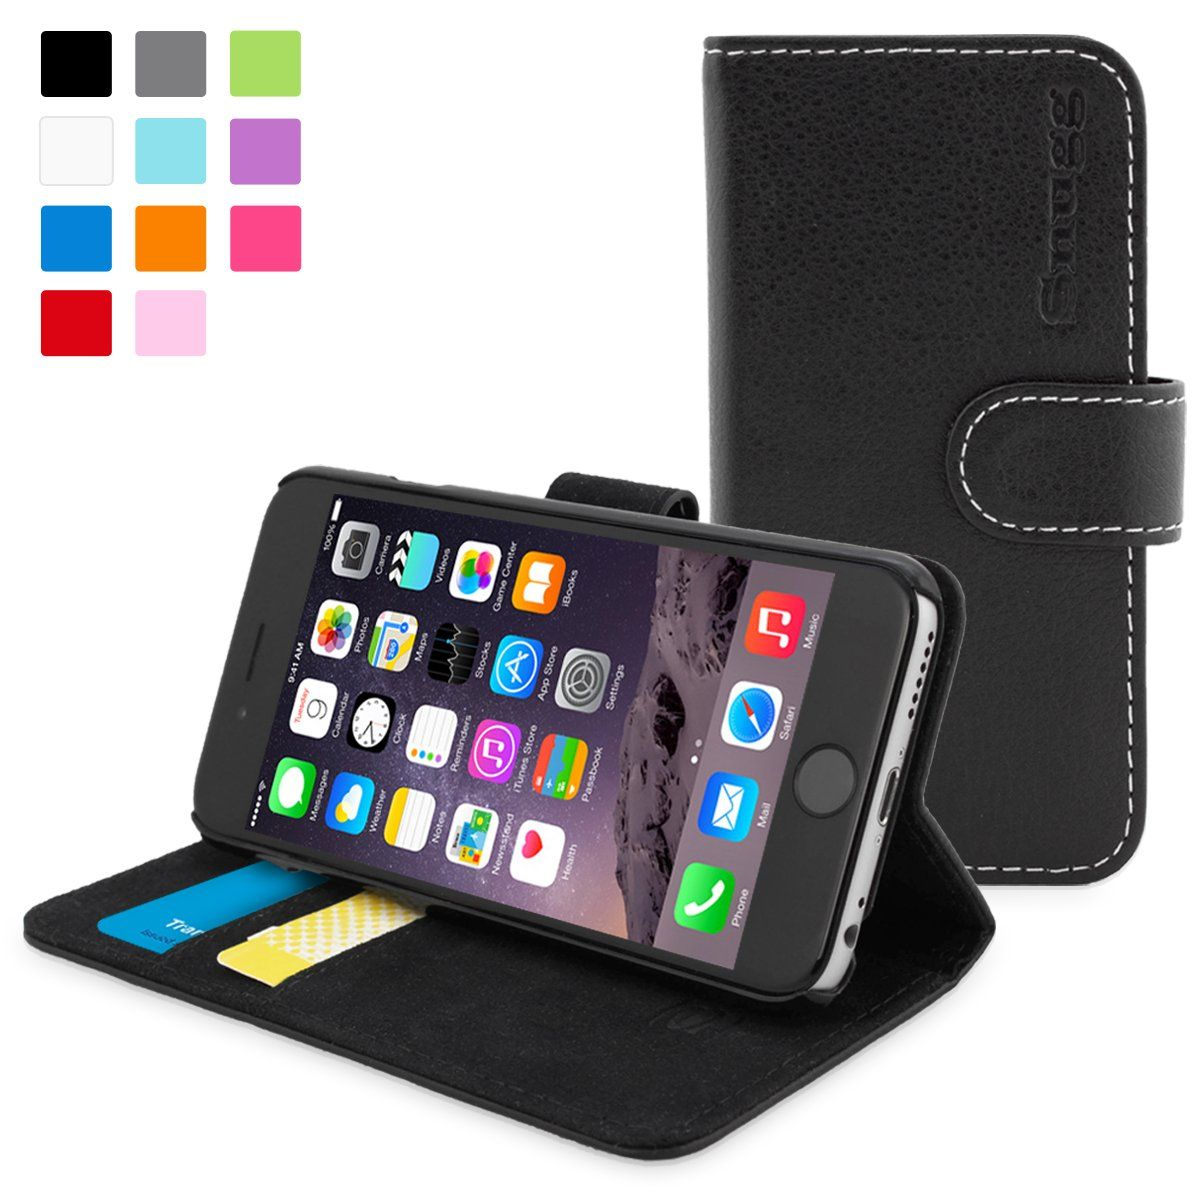 new products 1c689 d2684 Snugg iPhone 6 Leather Flip Case in Black - Flip Wallet case with ...